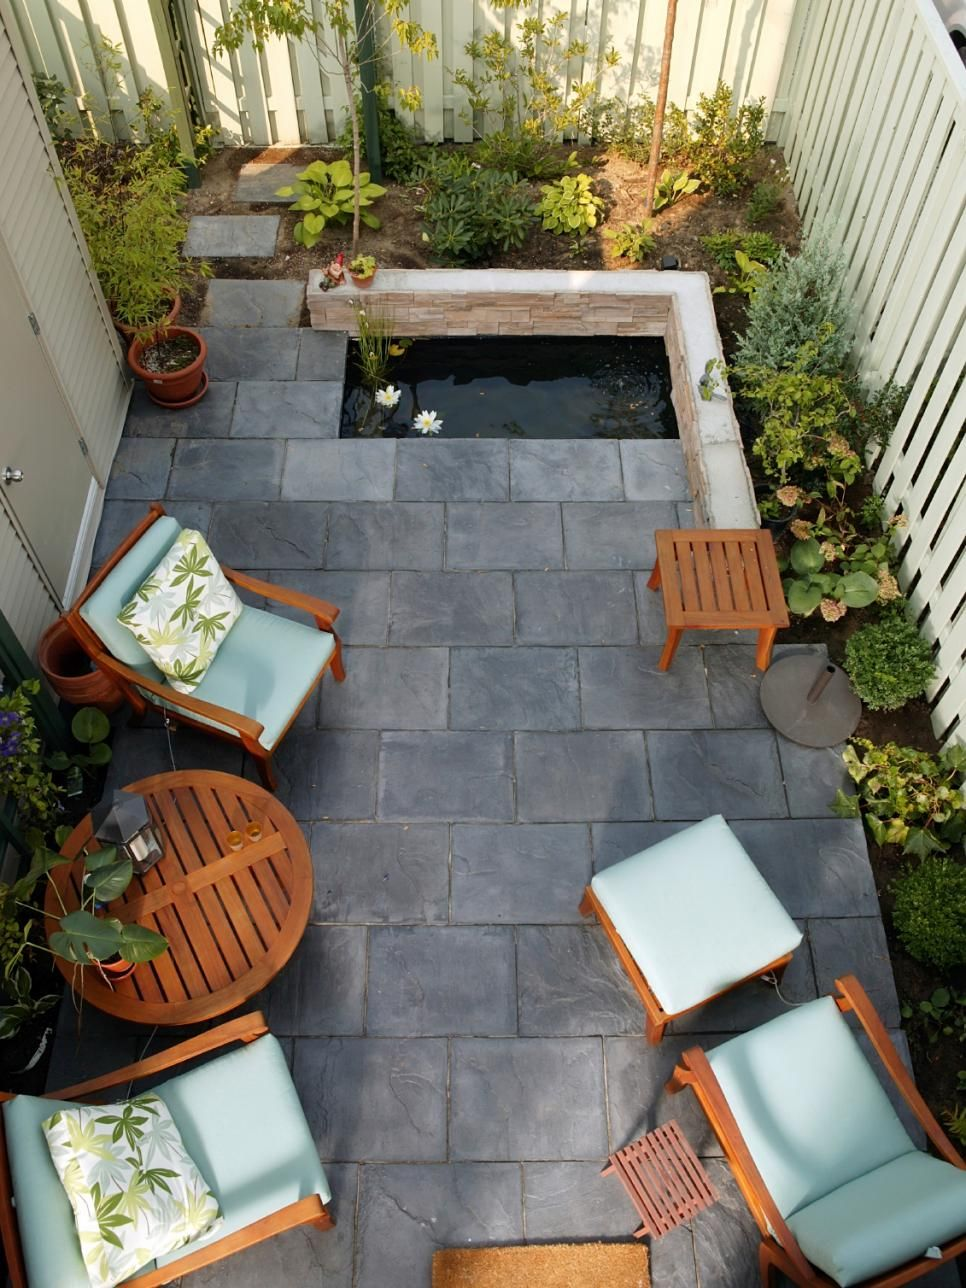 Check Out These Hgtv Photos Of Intimate Cozy Courtyards And Get Inspired To Add One